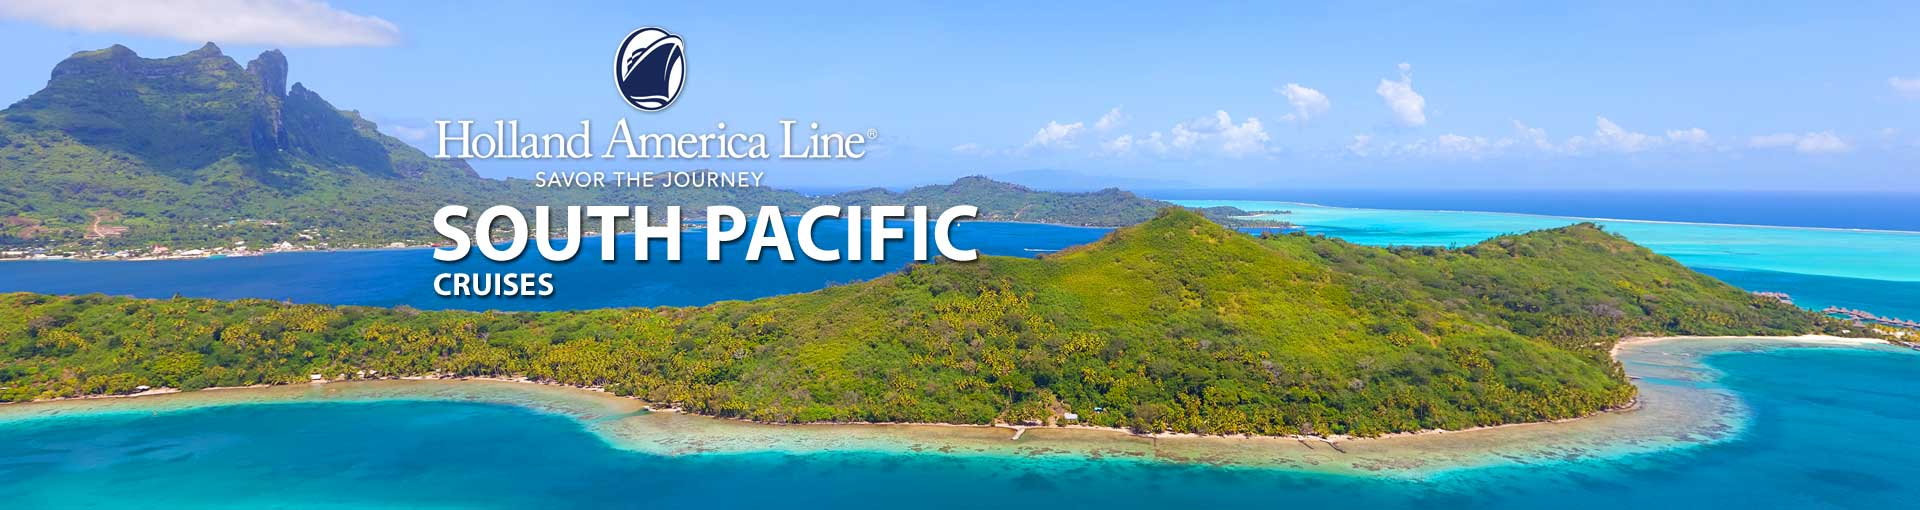 Holland America South Pacific Tahiti Cruises